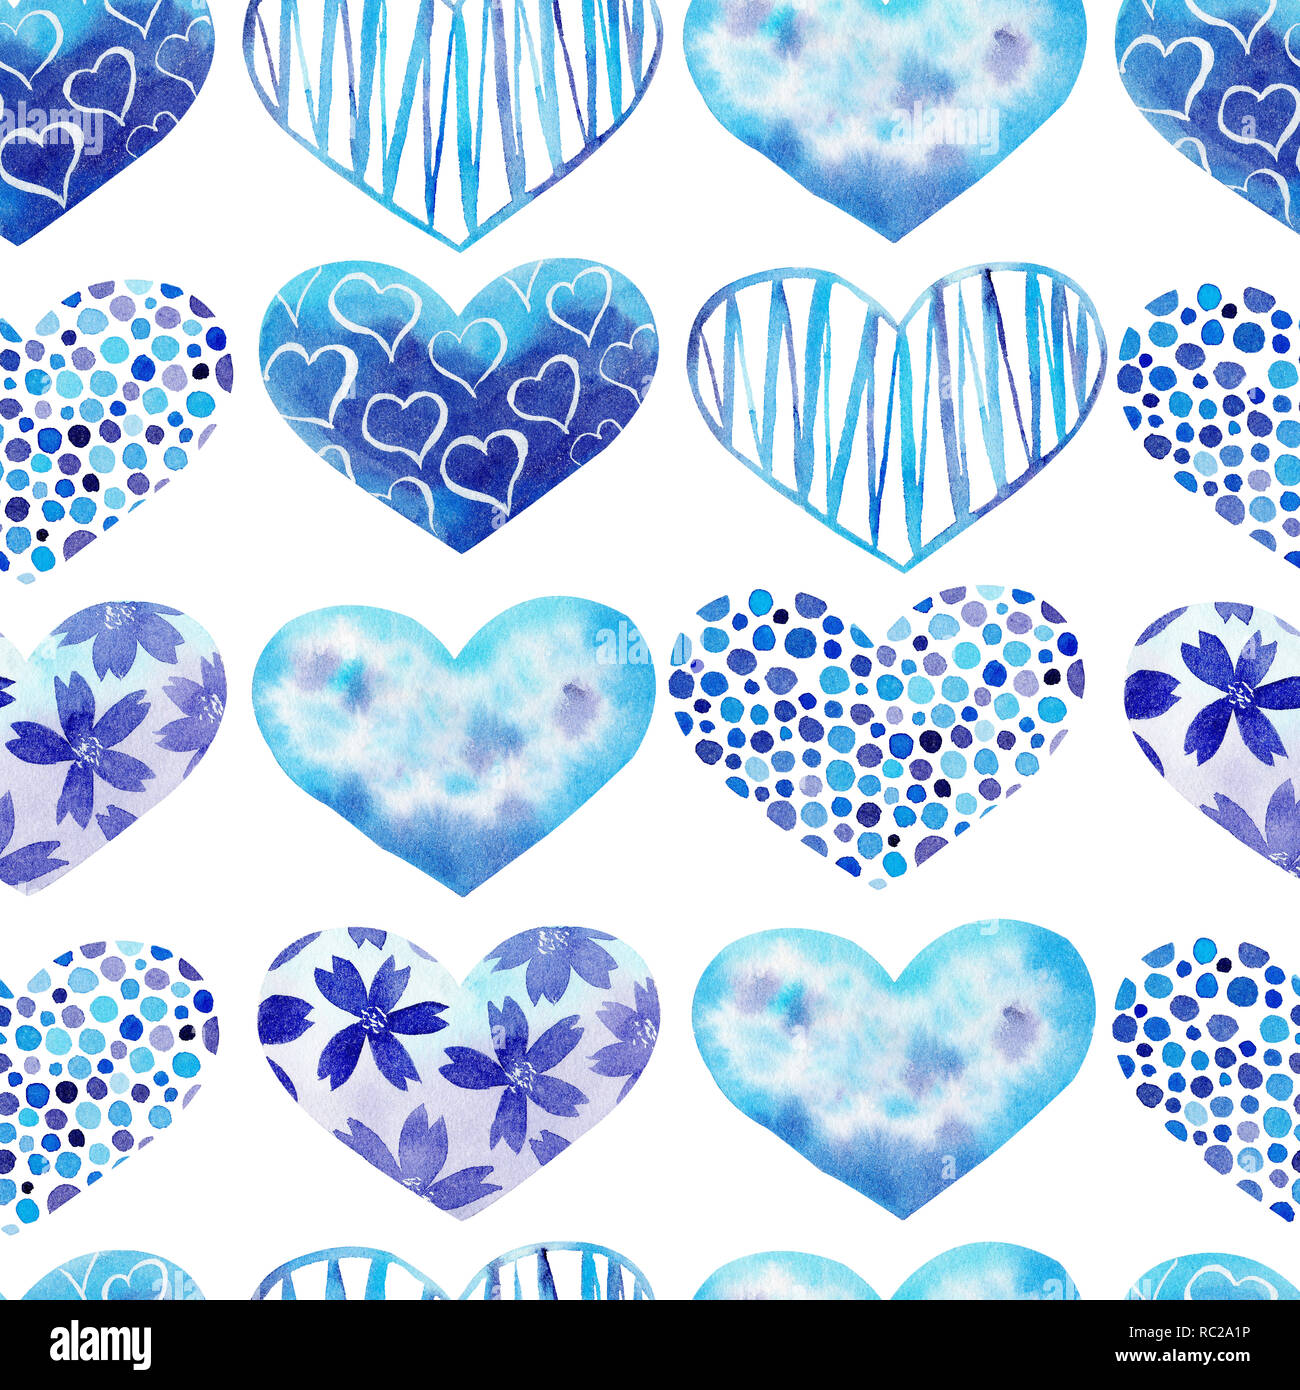 Unduh 45 Background Blue Heart HD Gratis